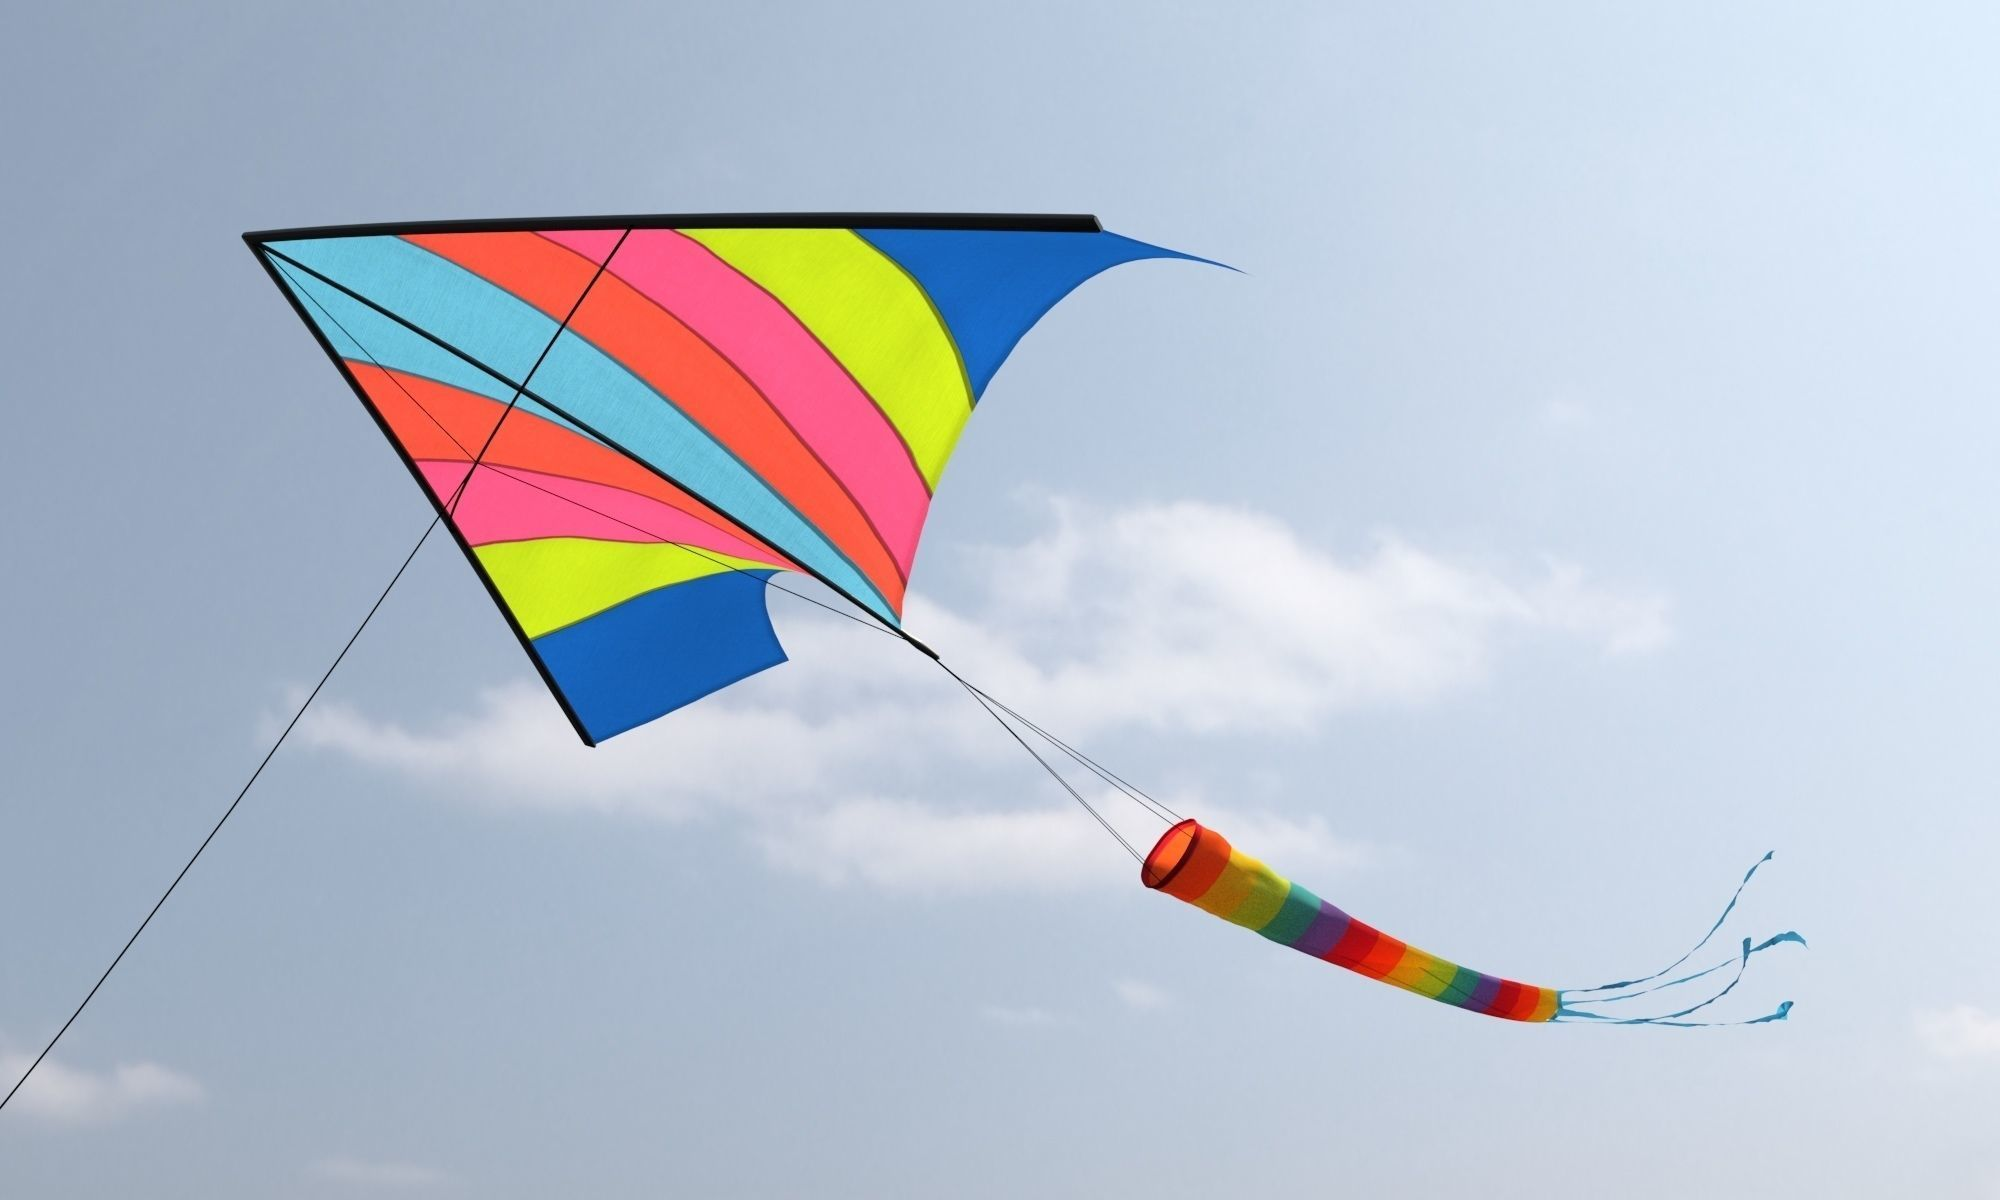 classic wind kite model | CGTrader